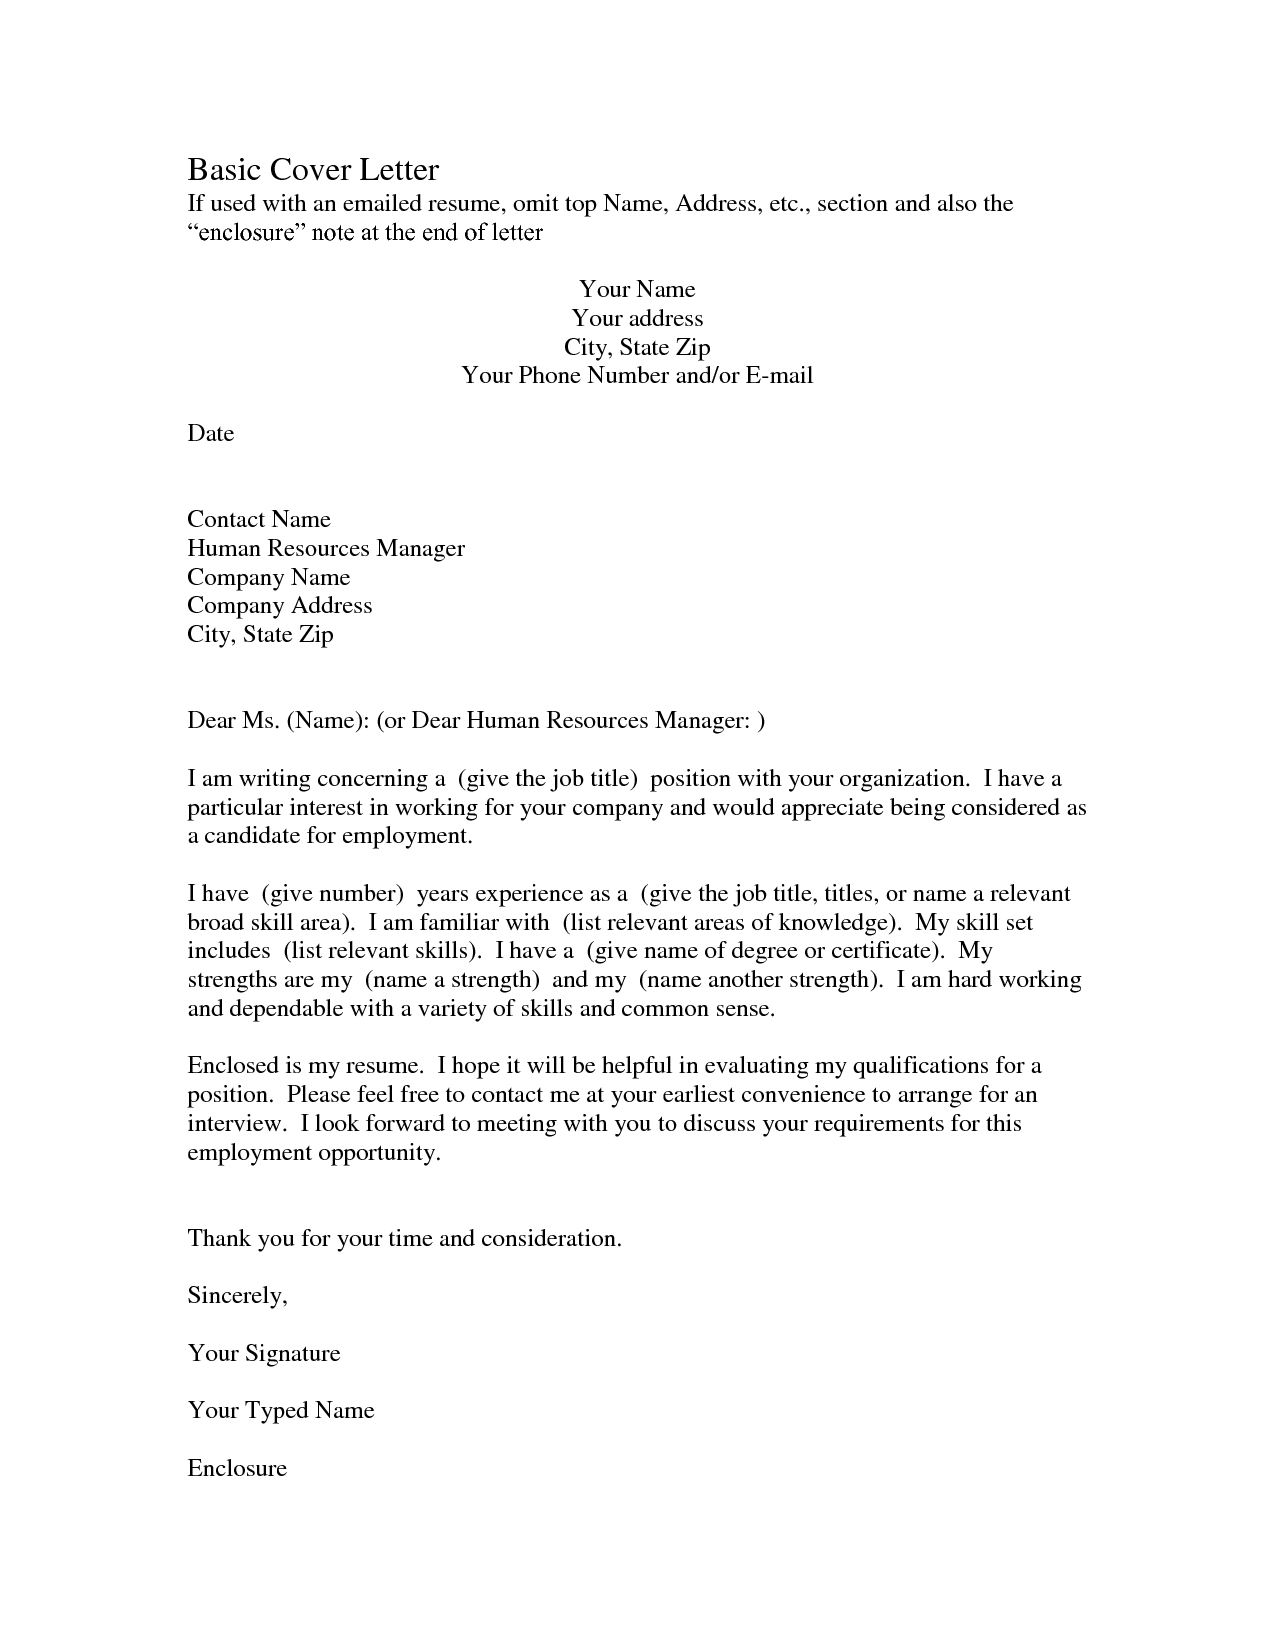 Dear Seller Letter Template - This Cover Letter Sample Shows How A Resumes for Teachers Can Help